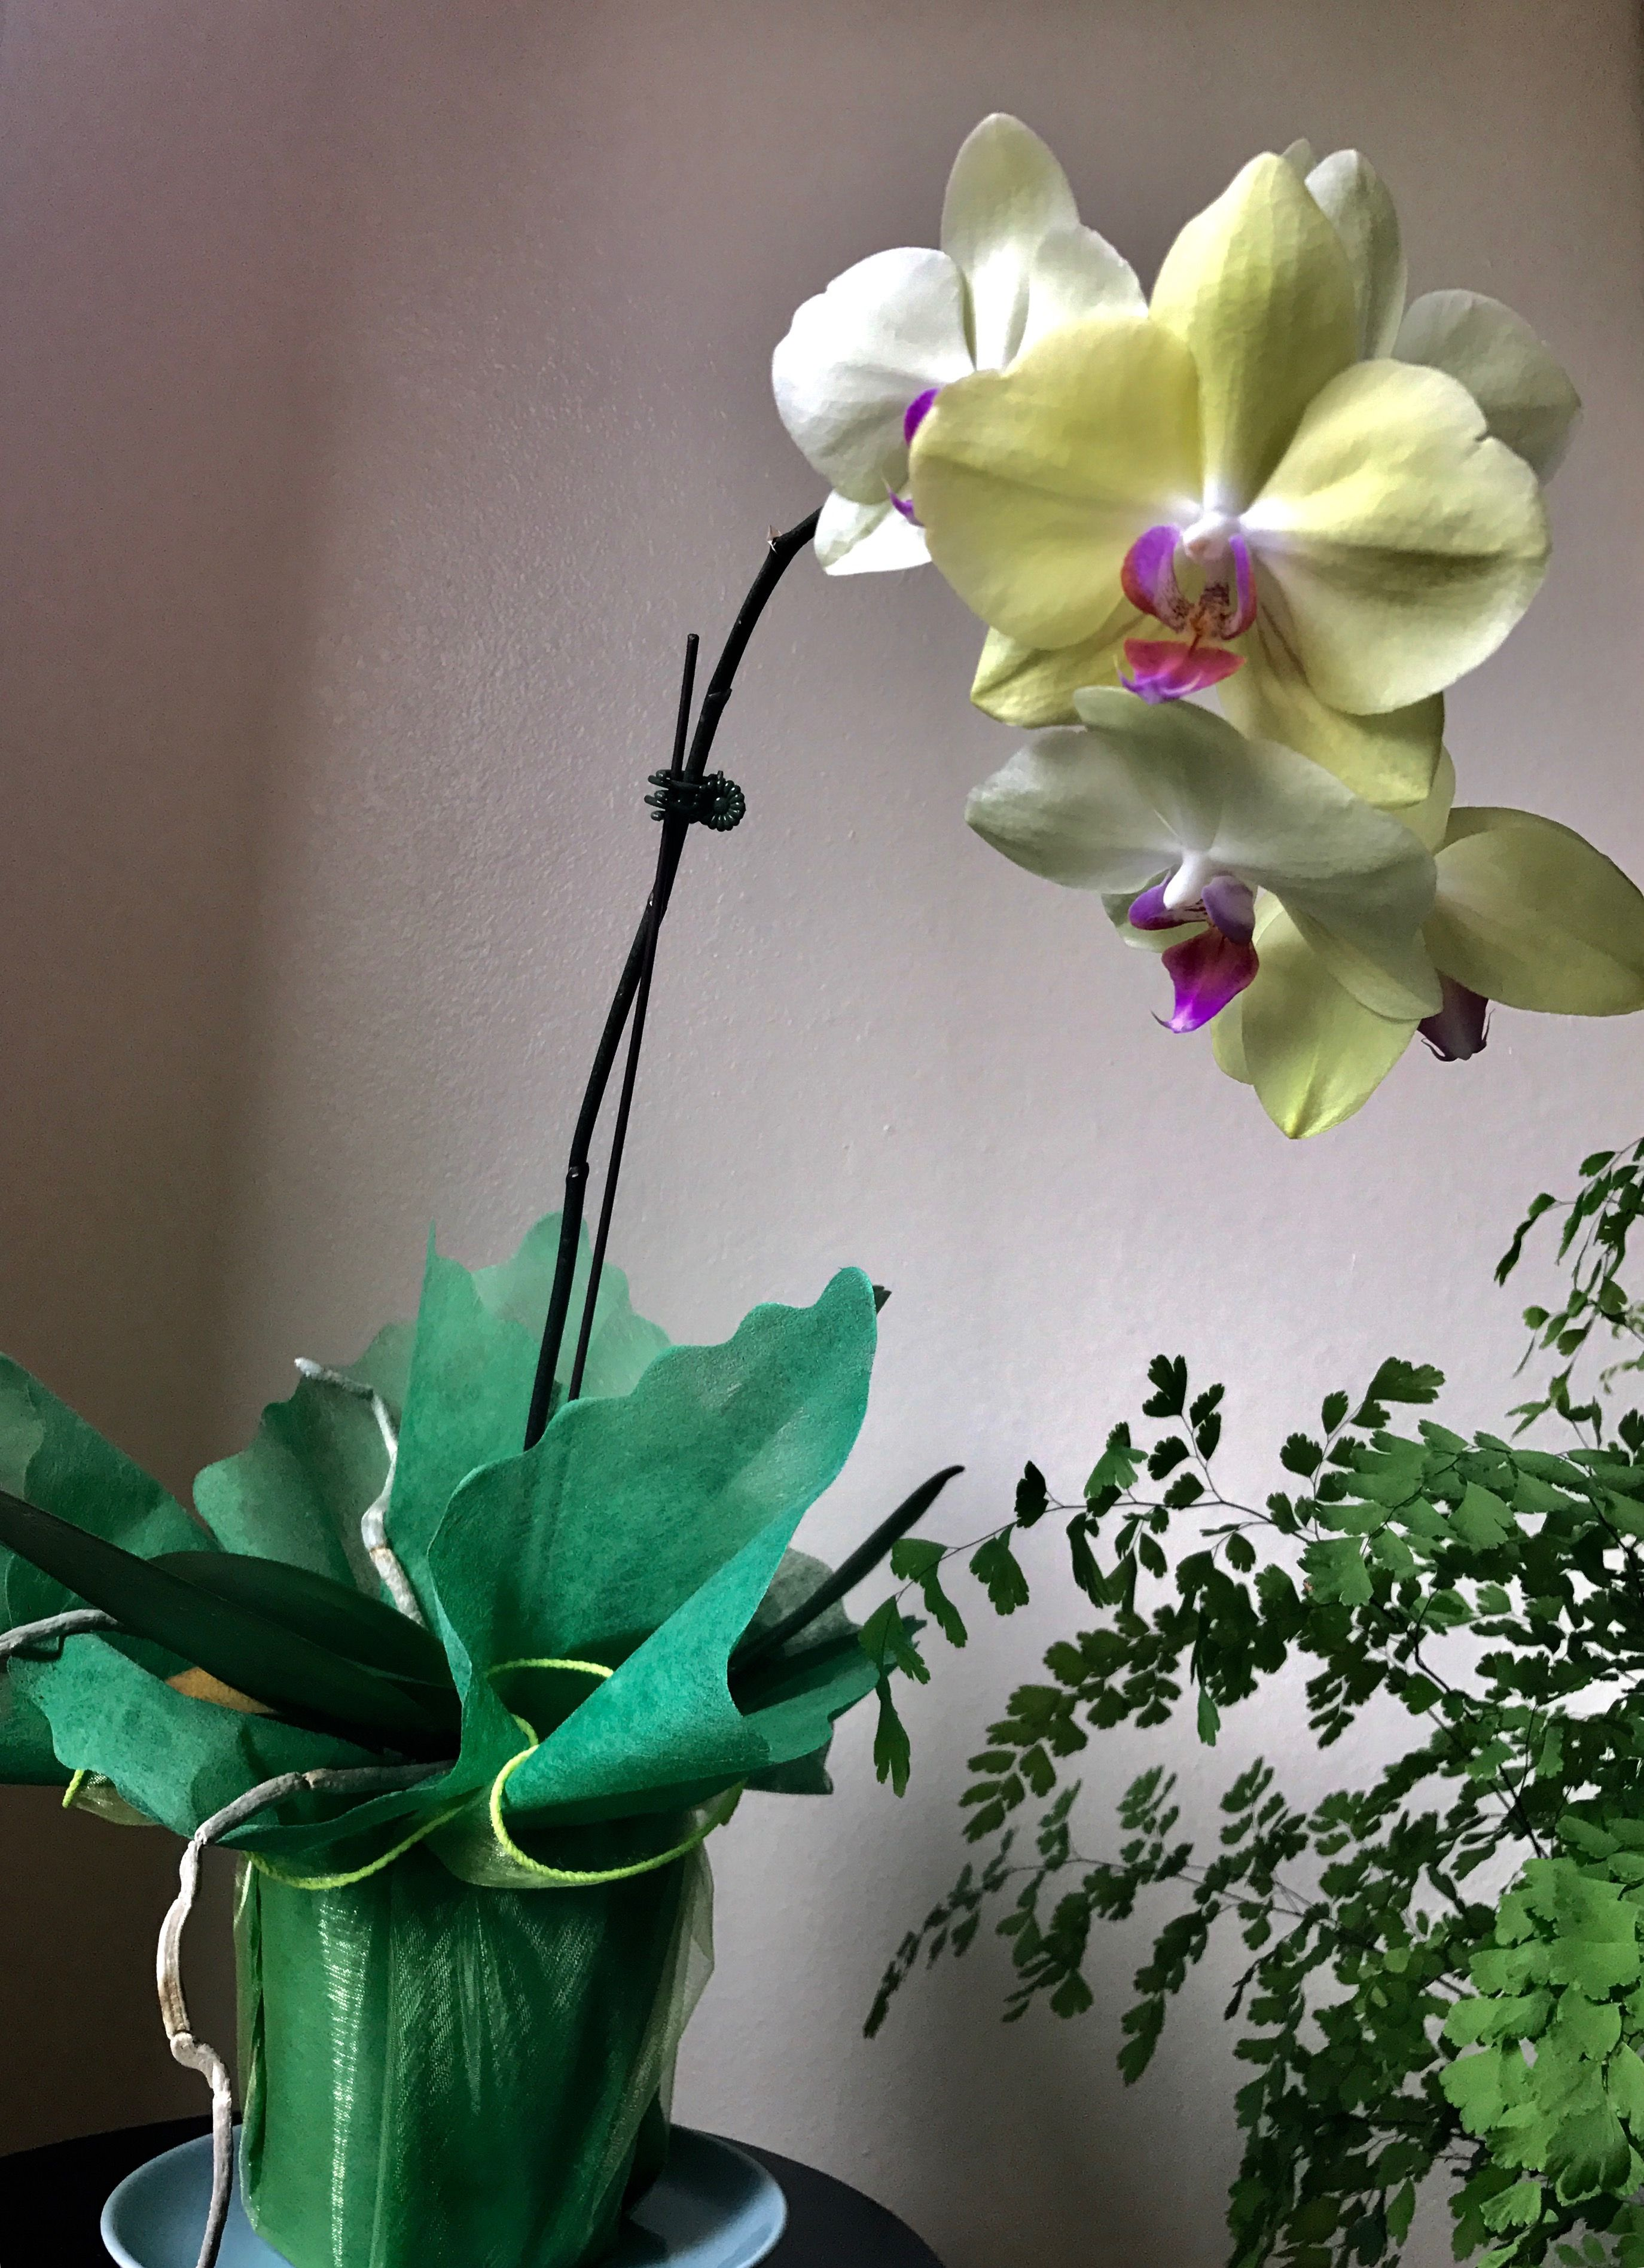 Waisum has beautiful yellow orchids in her home orchids